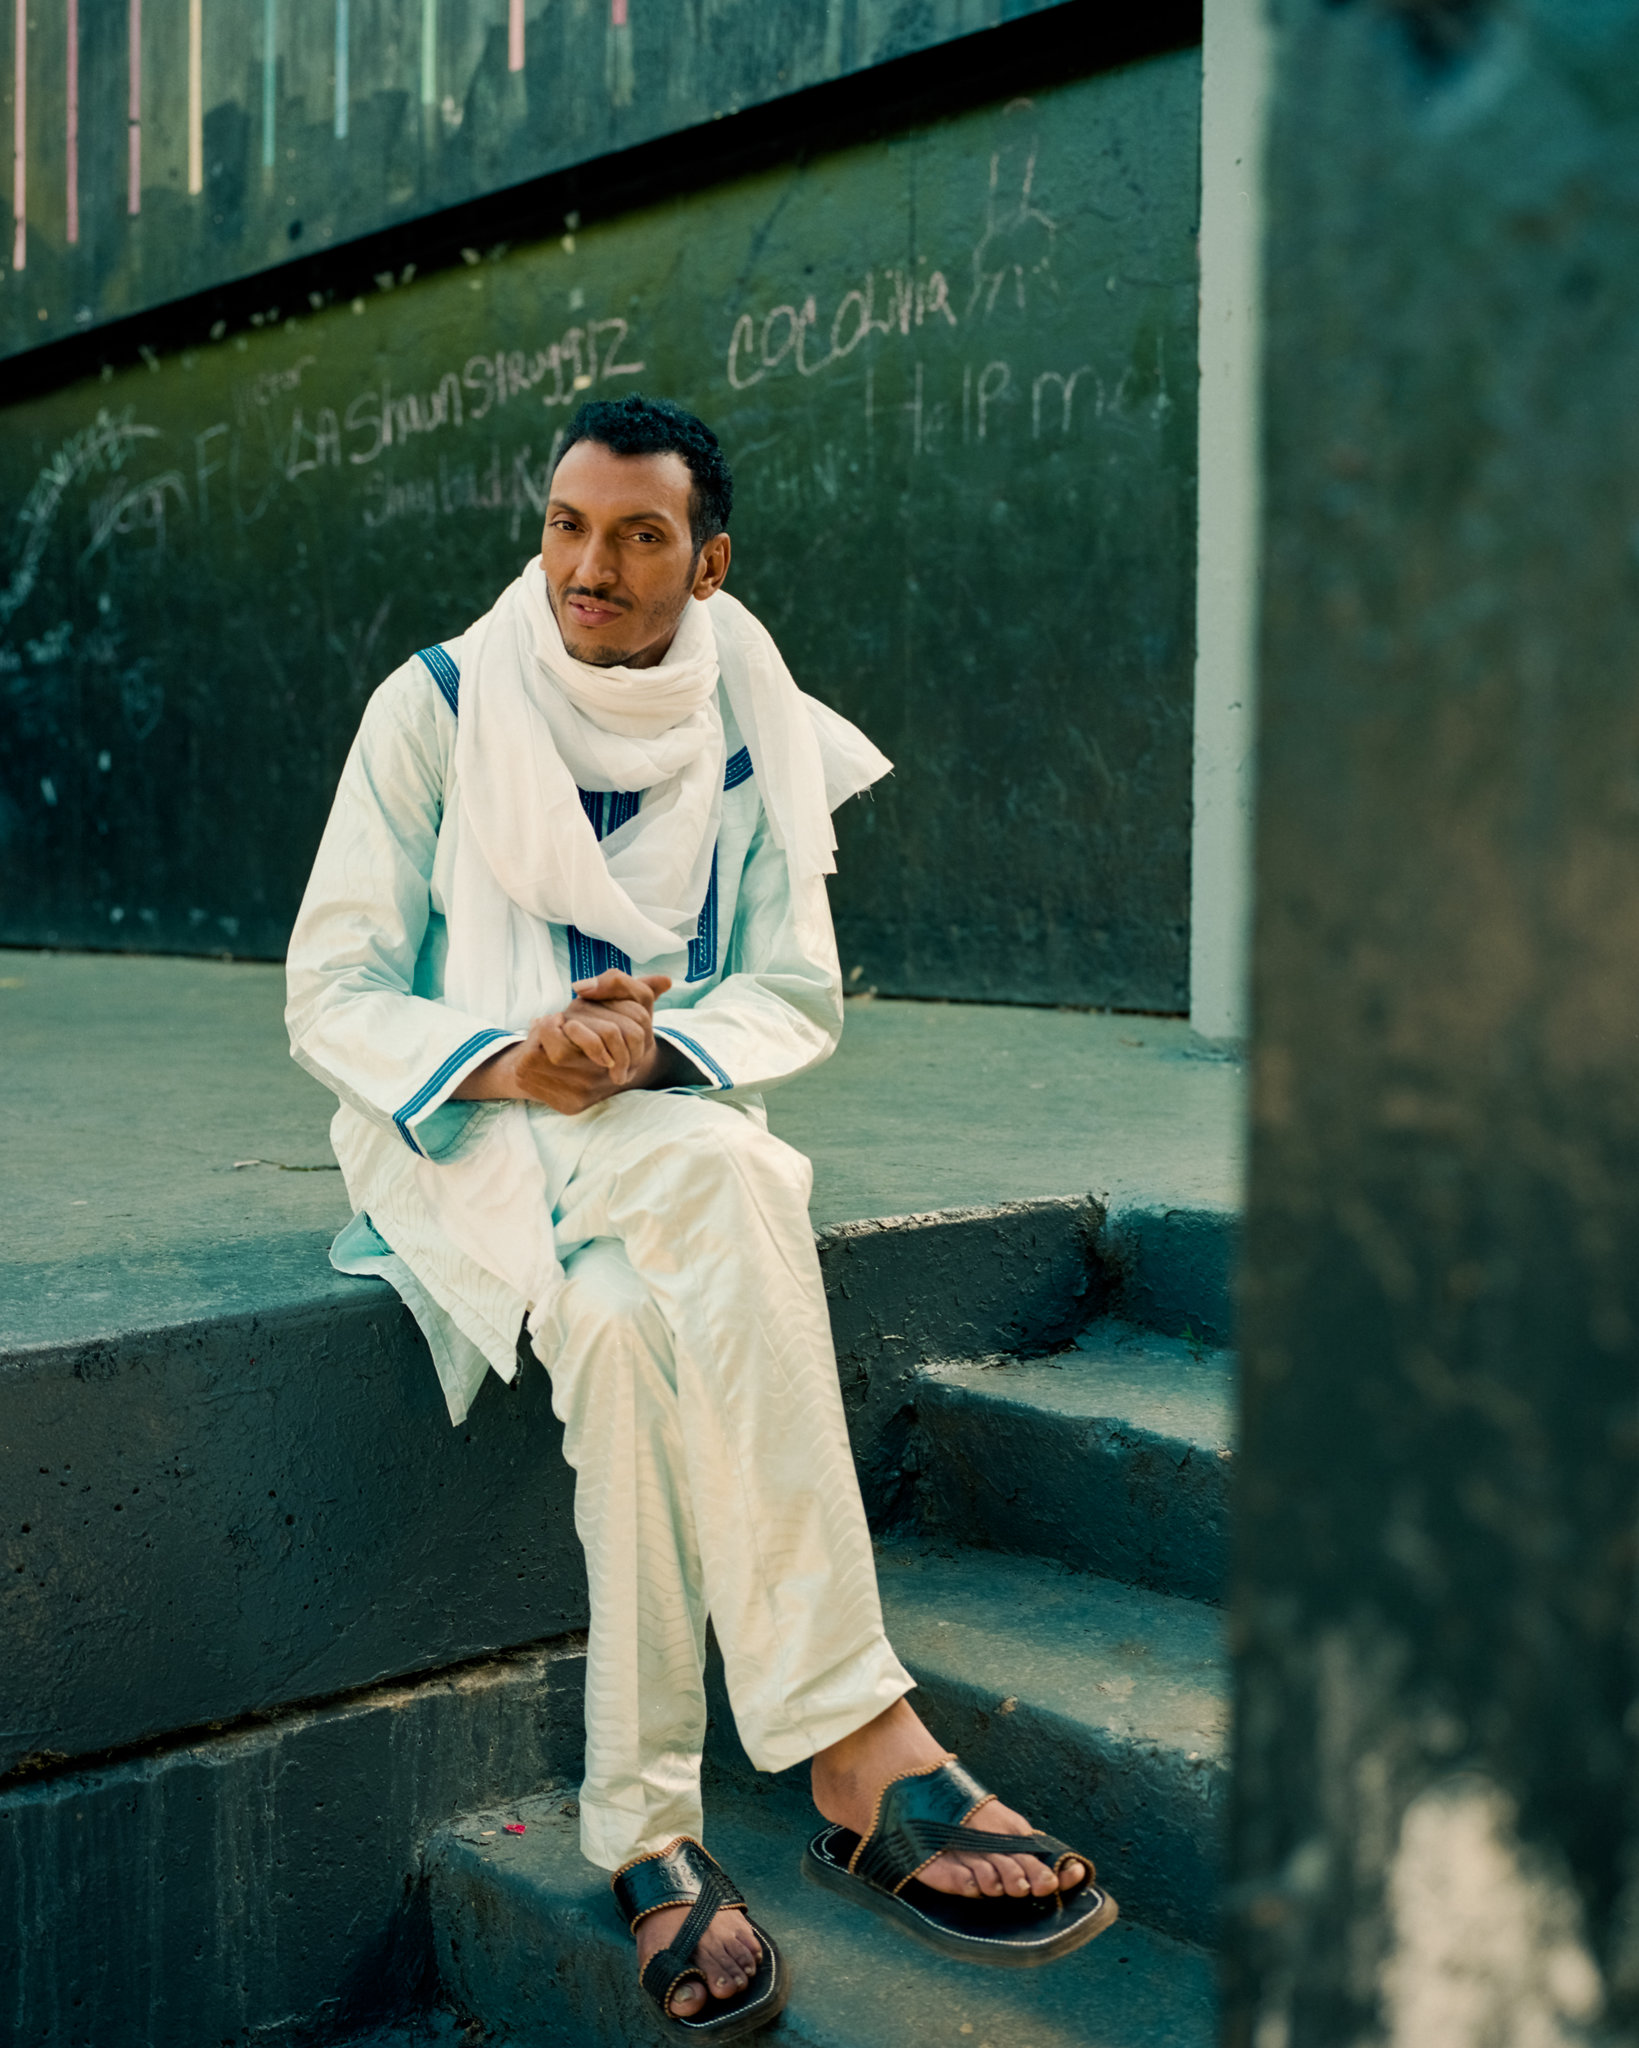 How Bombino Became the Sultan of Shred - Mike Rubin of The New York Times wrote an extensive feature on Bombino and his album 'Deran' premiering online May 17, 2018 and in the Sunday print edition May 20, 2018.Photo by Andre D. Wagner for The New York Times